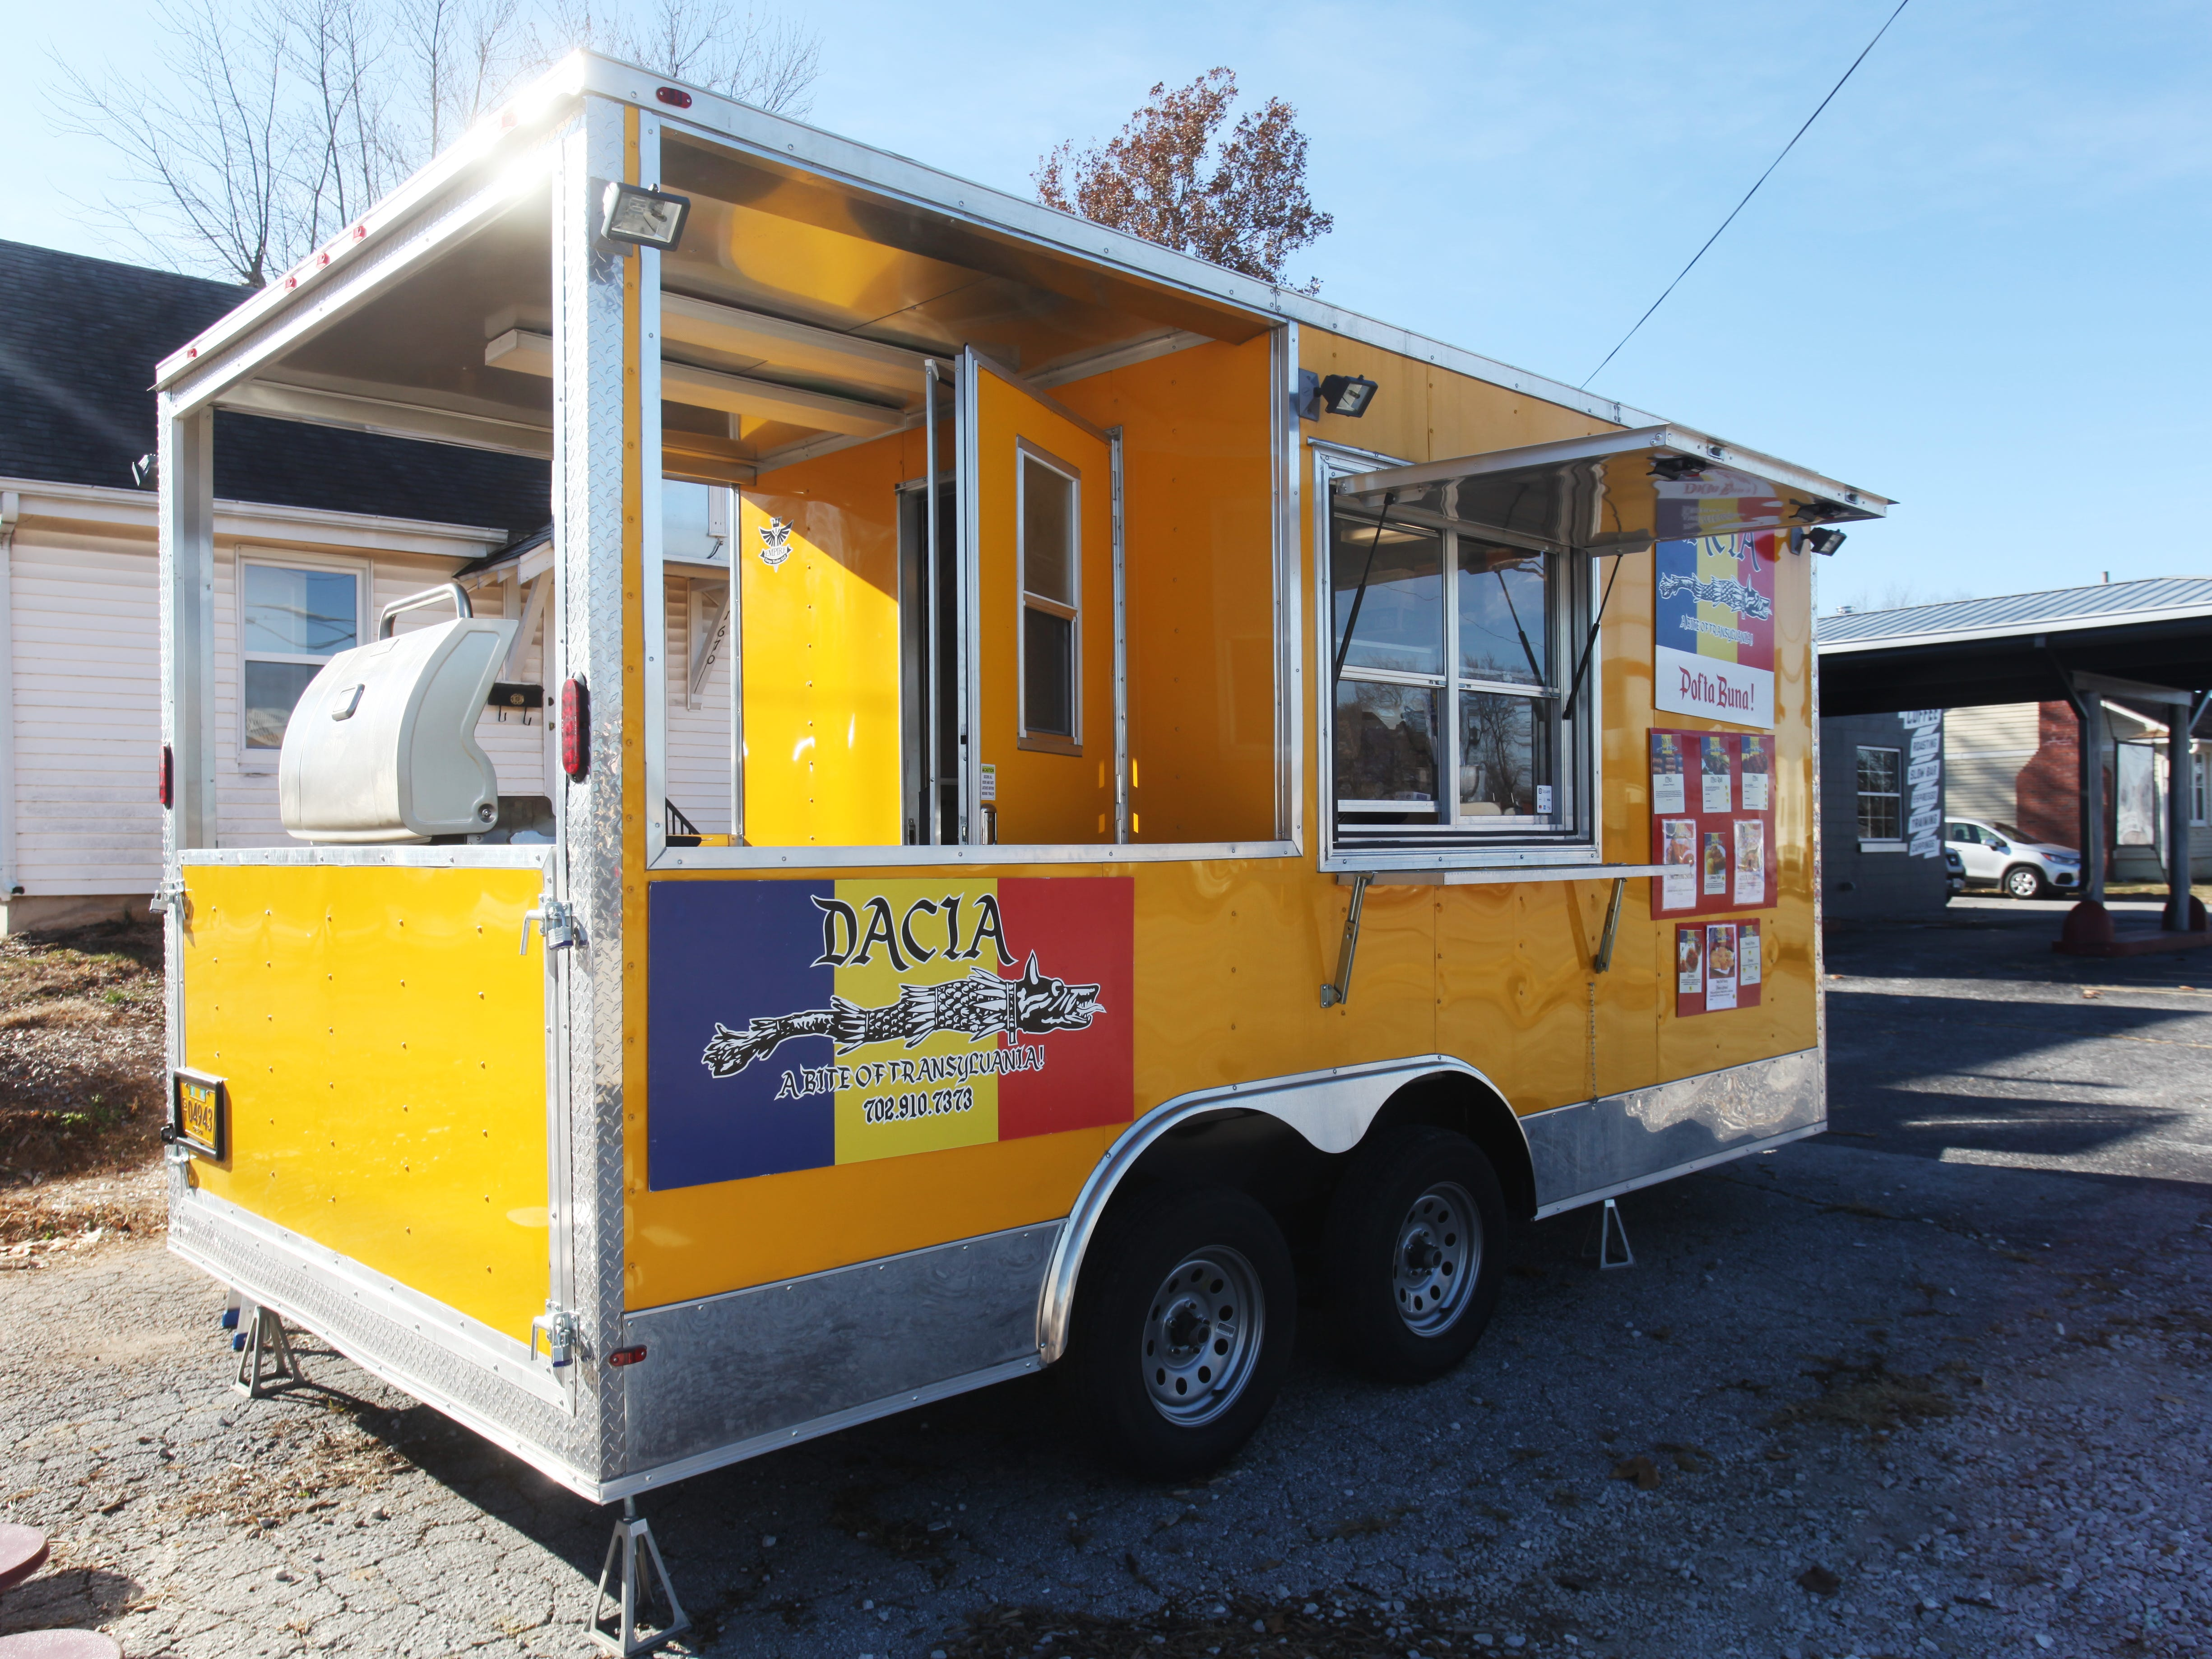 Dacia, a Romanian food truck, is based at 1666 E St. Louis Street in Springfield.